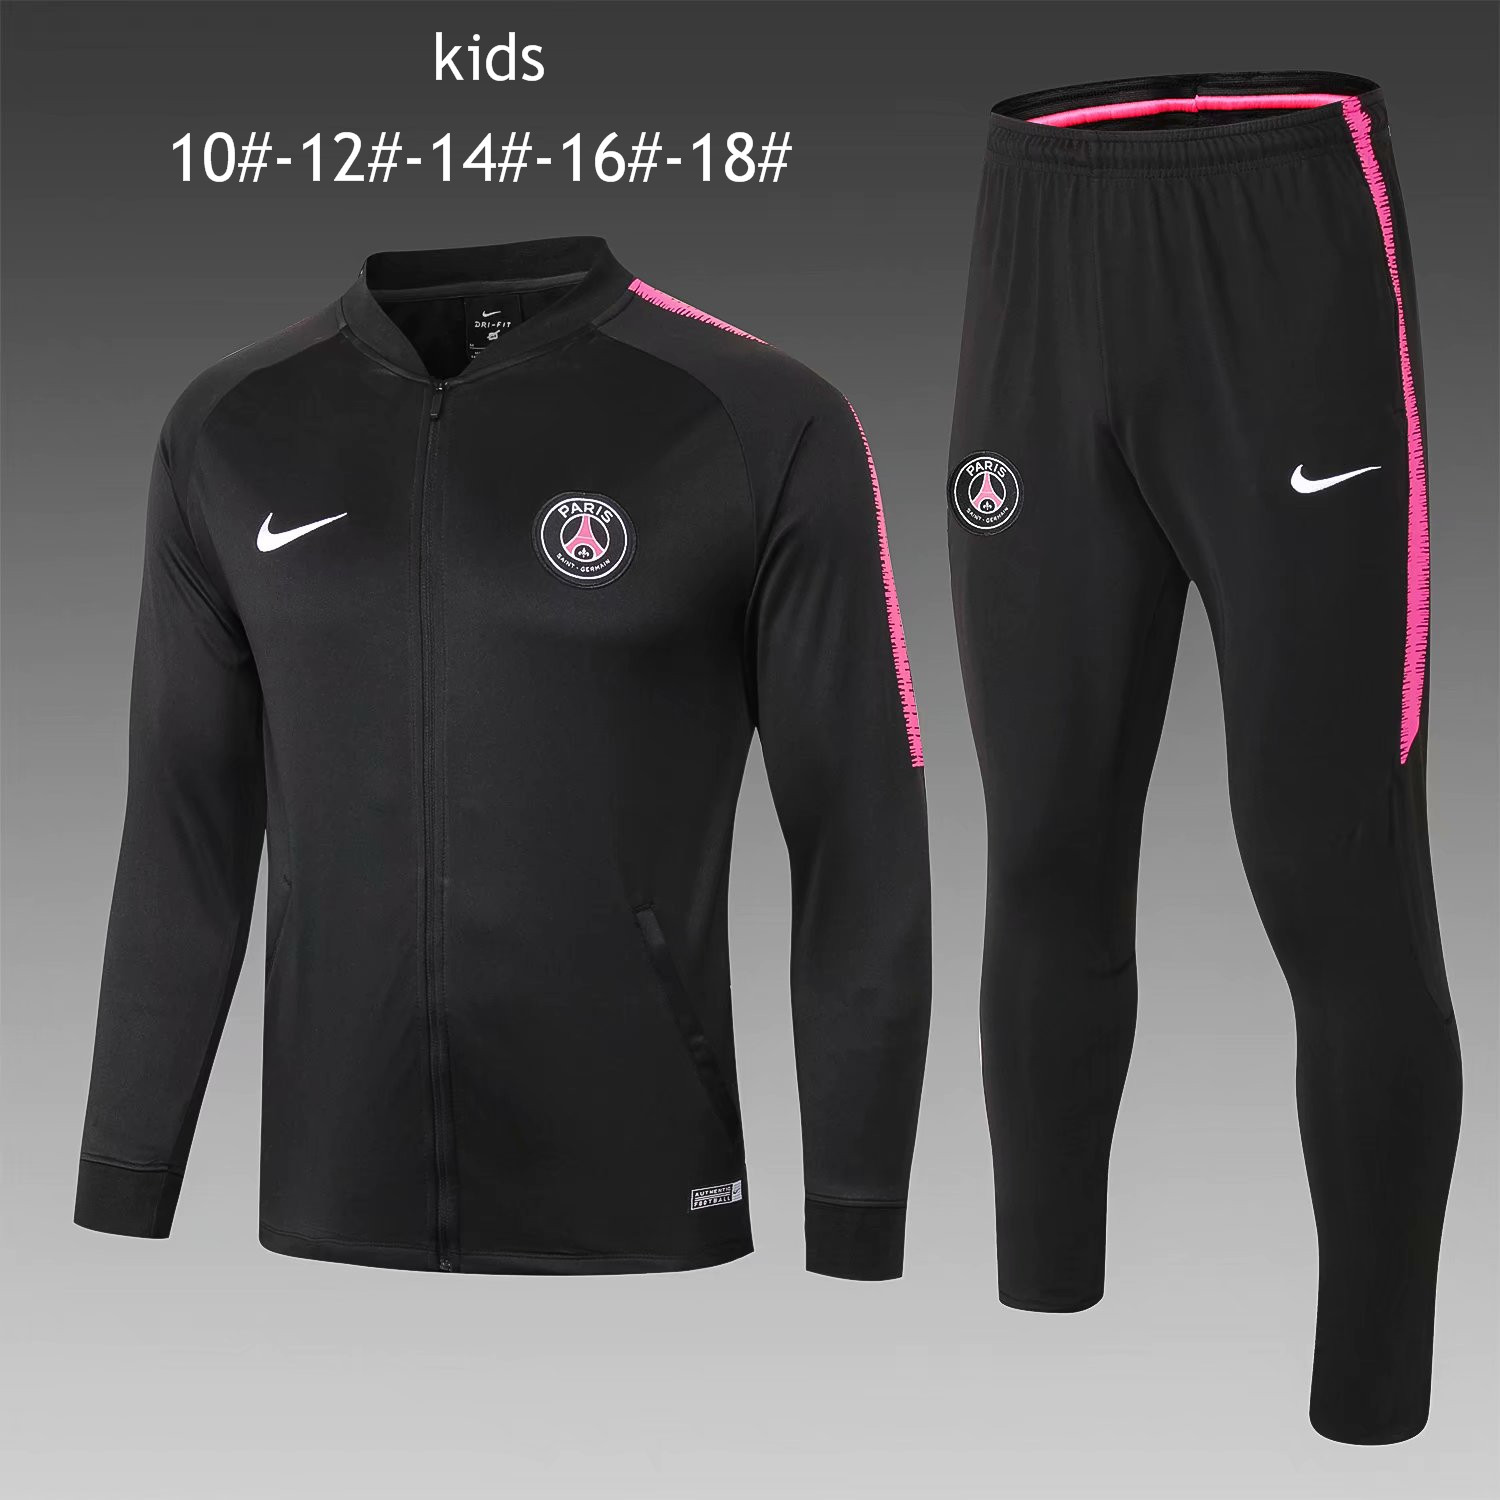 bb40883e3 US$ 32.8 - Kids PSG Jacket + Pants Training Suit Black 2018/19 -  www.fcsoccerworld.com